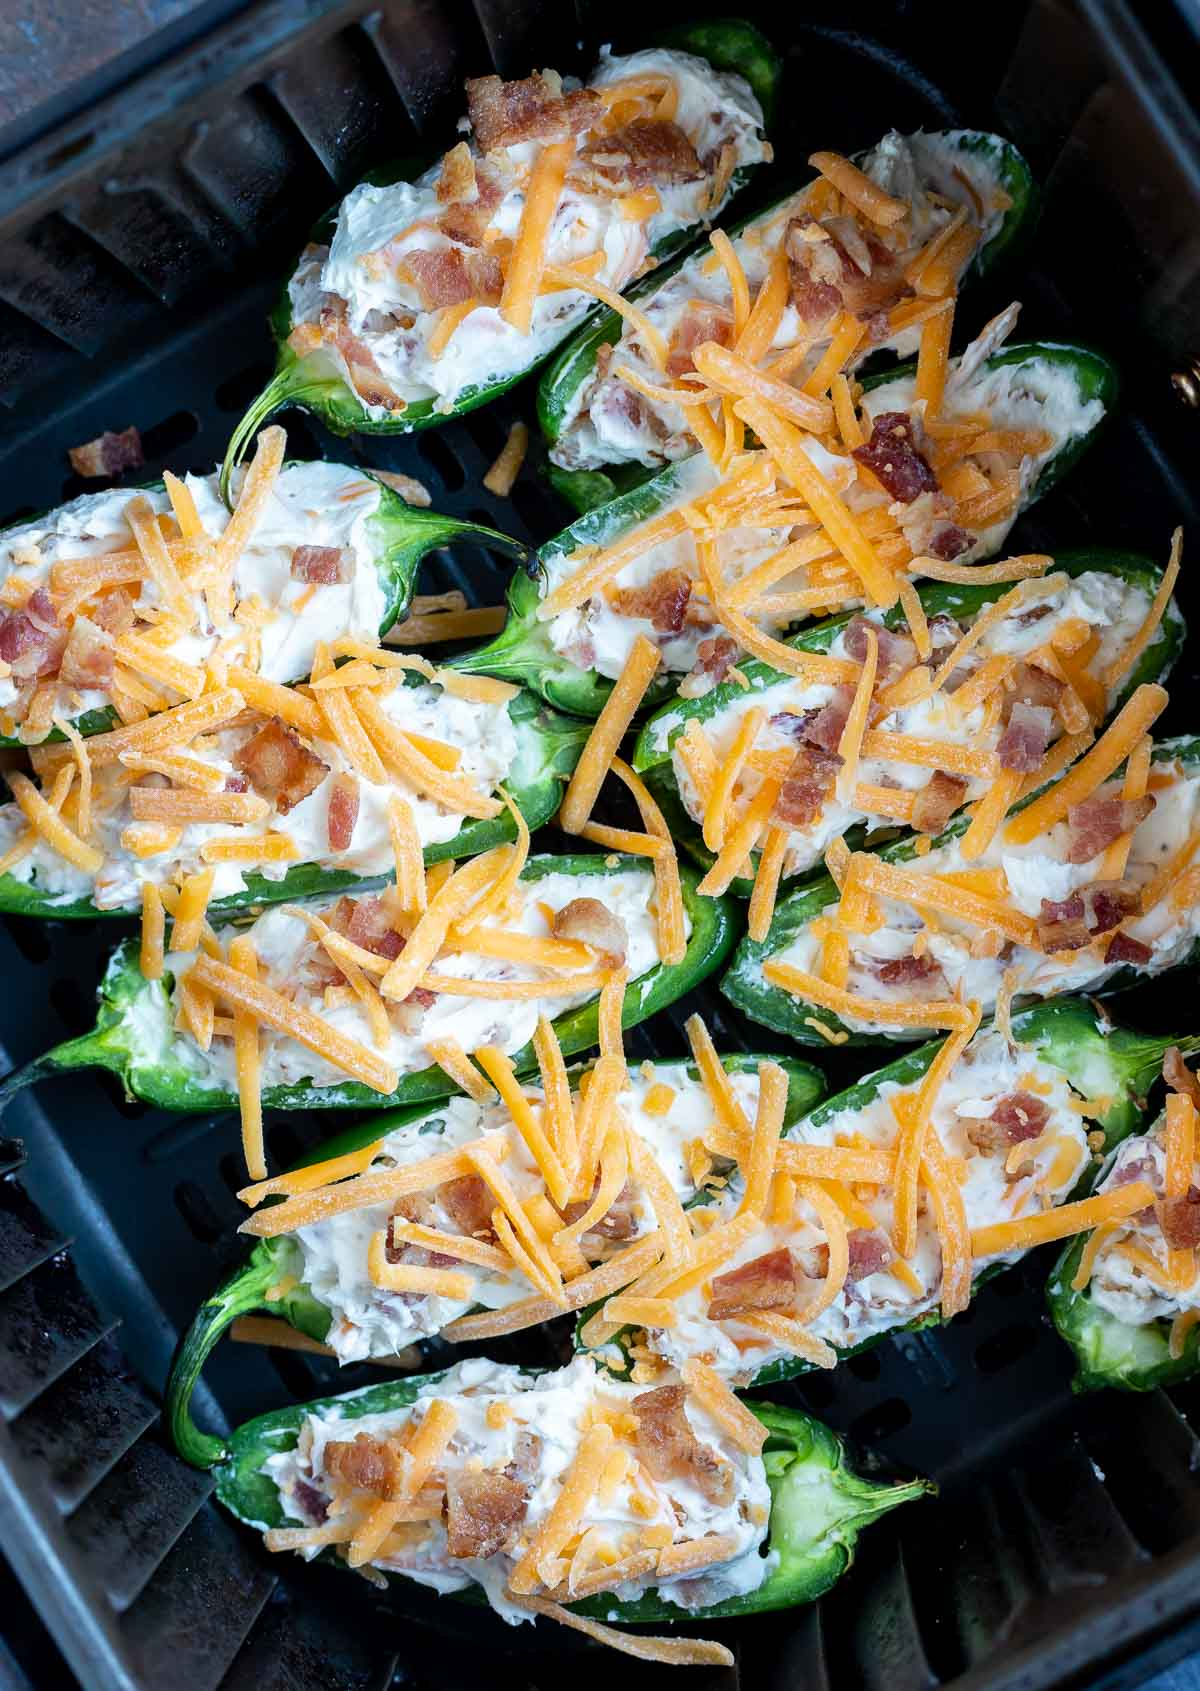 uncooked jalapeno poppers in air fryer basket